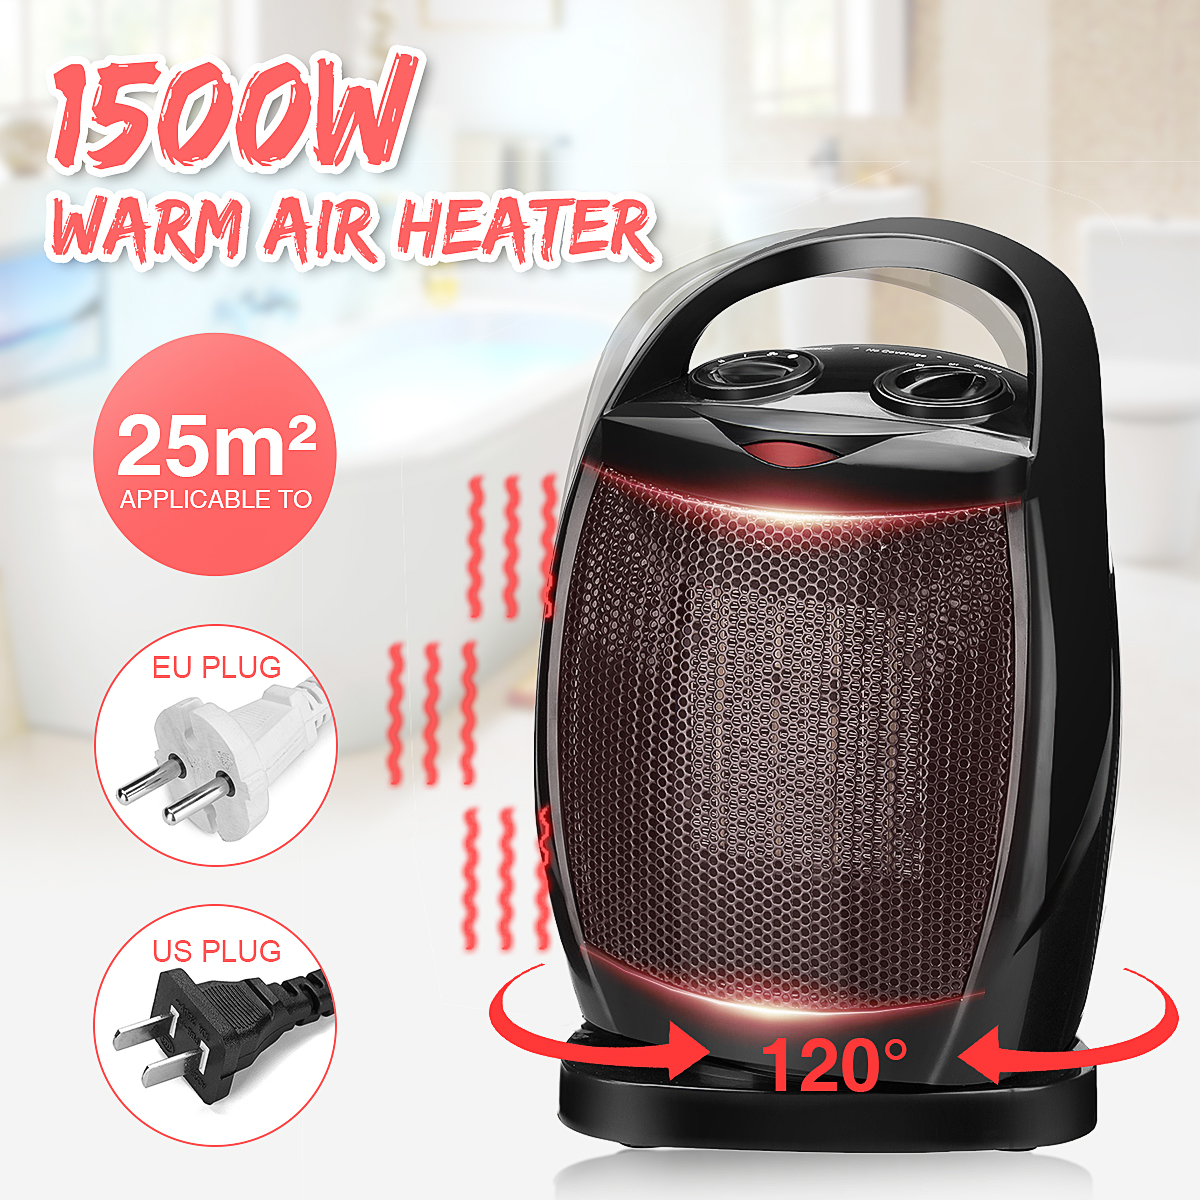 1500W 220V/110V Adjustable Electric Warm Air Heater Fan PTC Ceramics Rotation Warmer Thermostat Home Office with Handle Safe